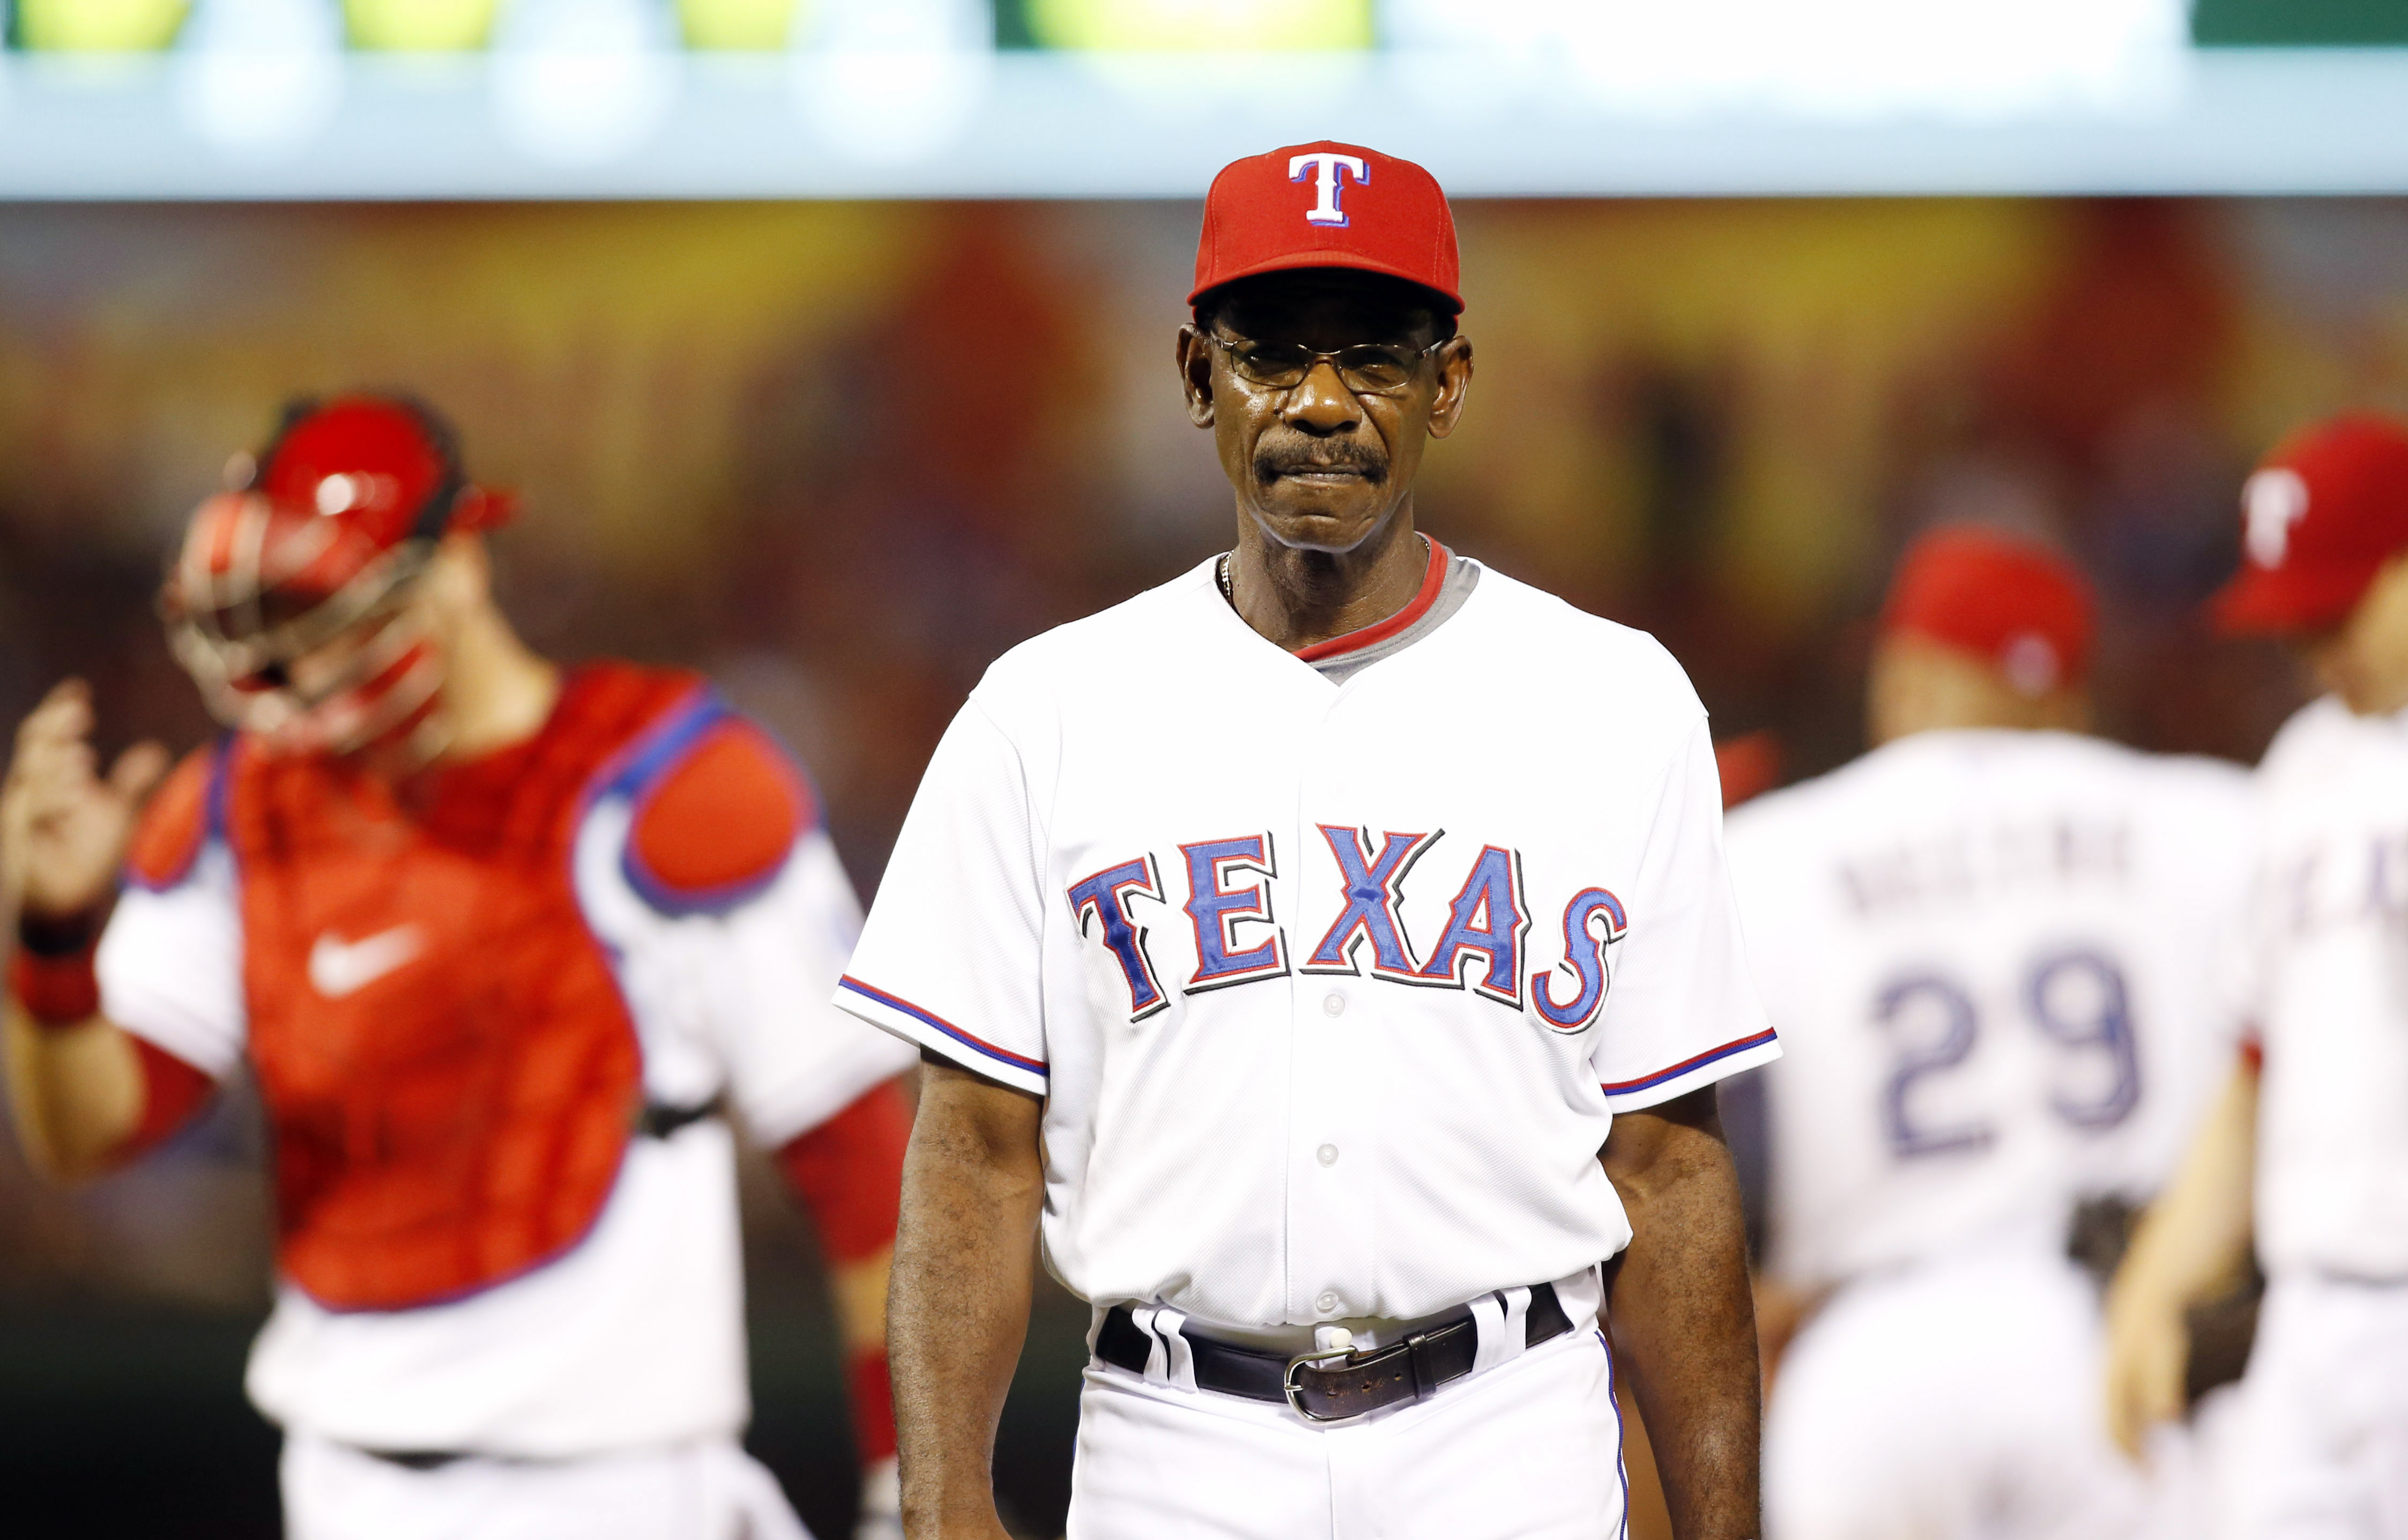 Will Ron Washington's Rangers quit tanking? (USA Today)